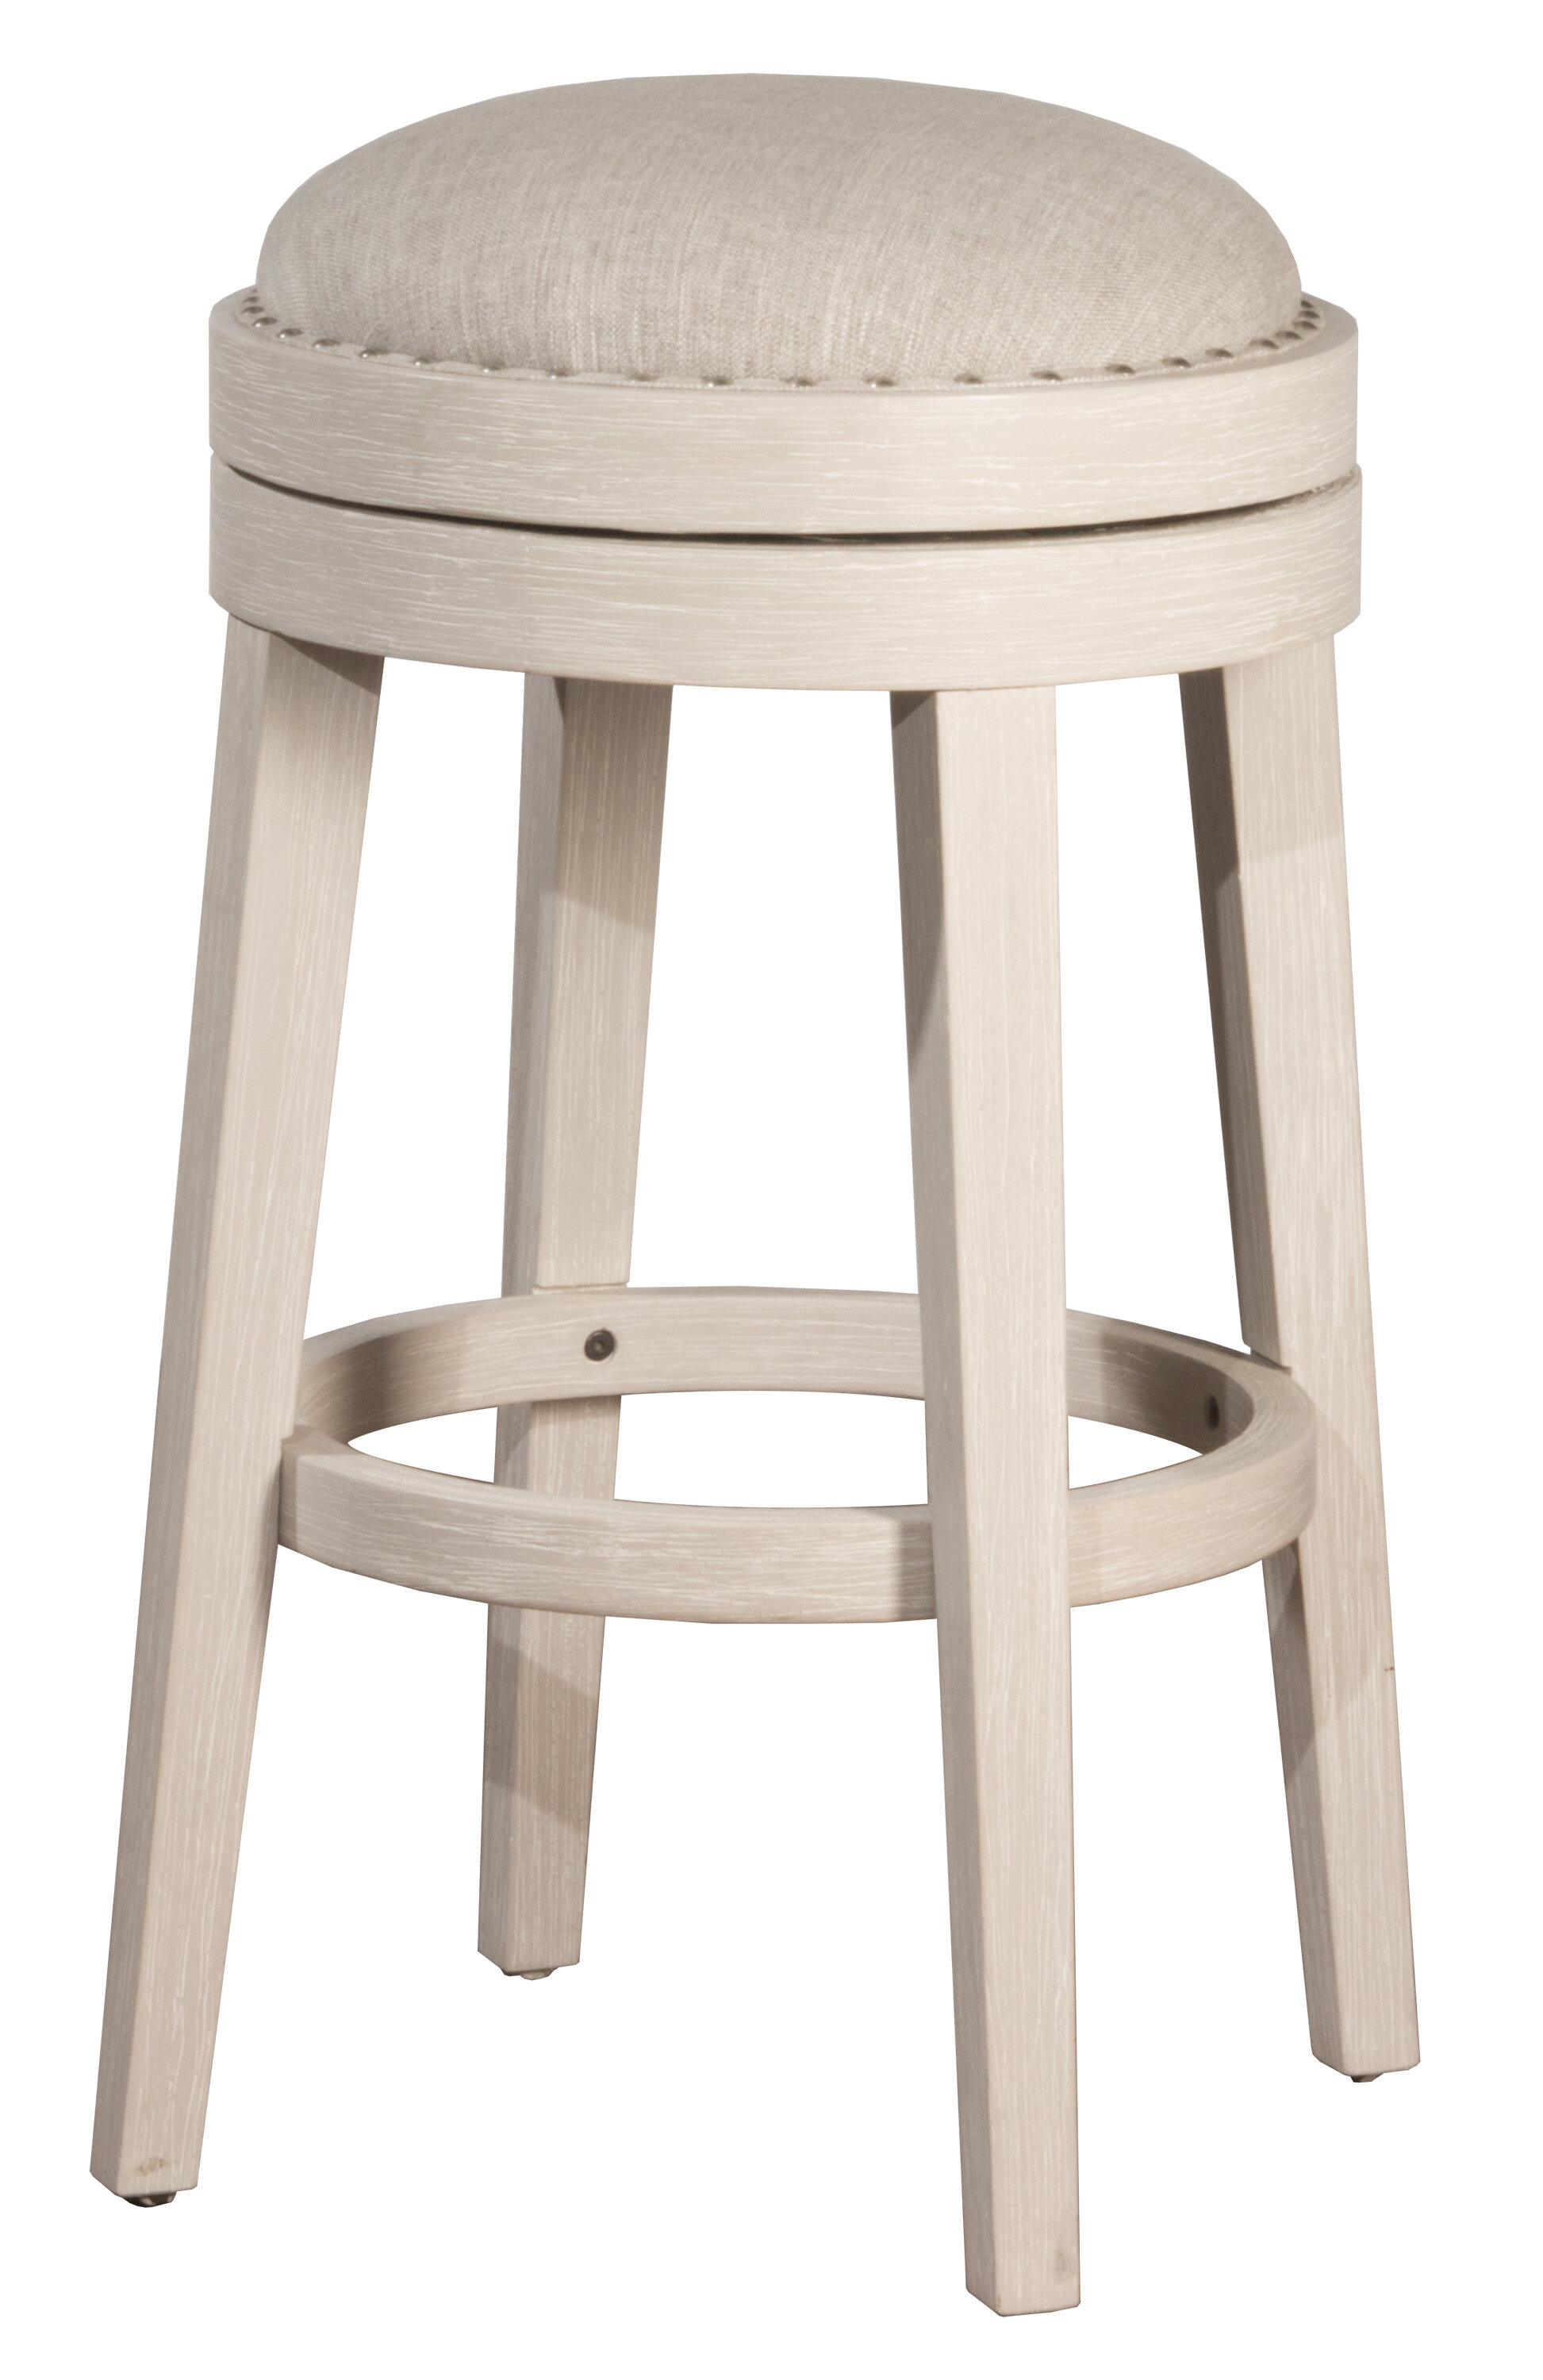 Excellent Rosecliff Heights Montpelier 26 Swivel Bar Stool Wayfair Bralicious Painted Fabric Chair Ideas Braliciousco